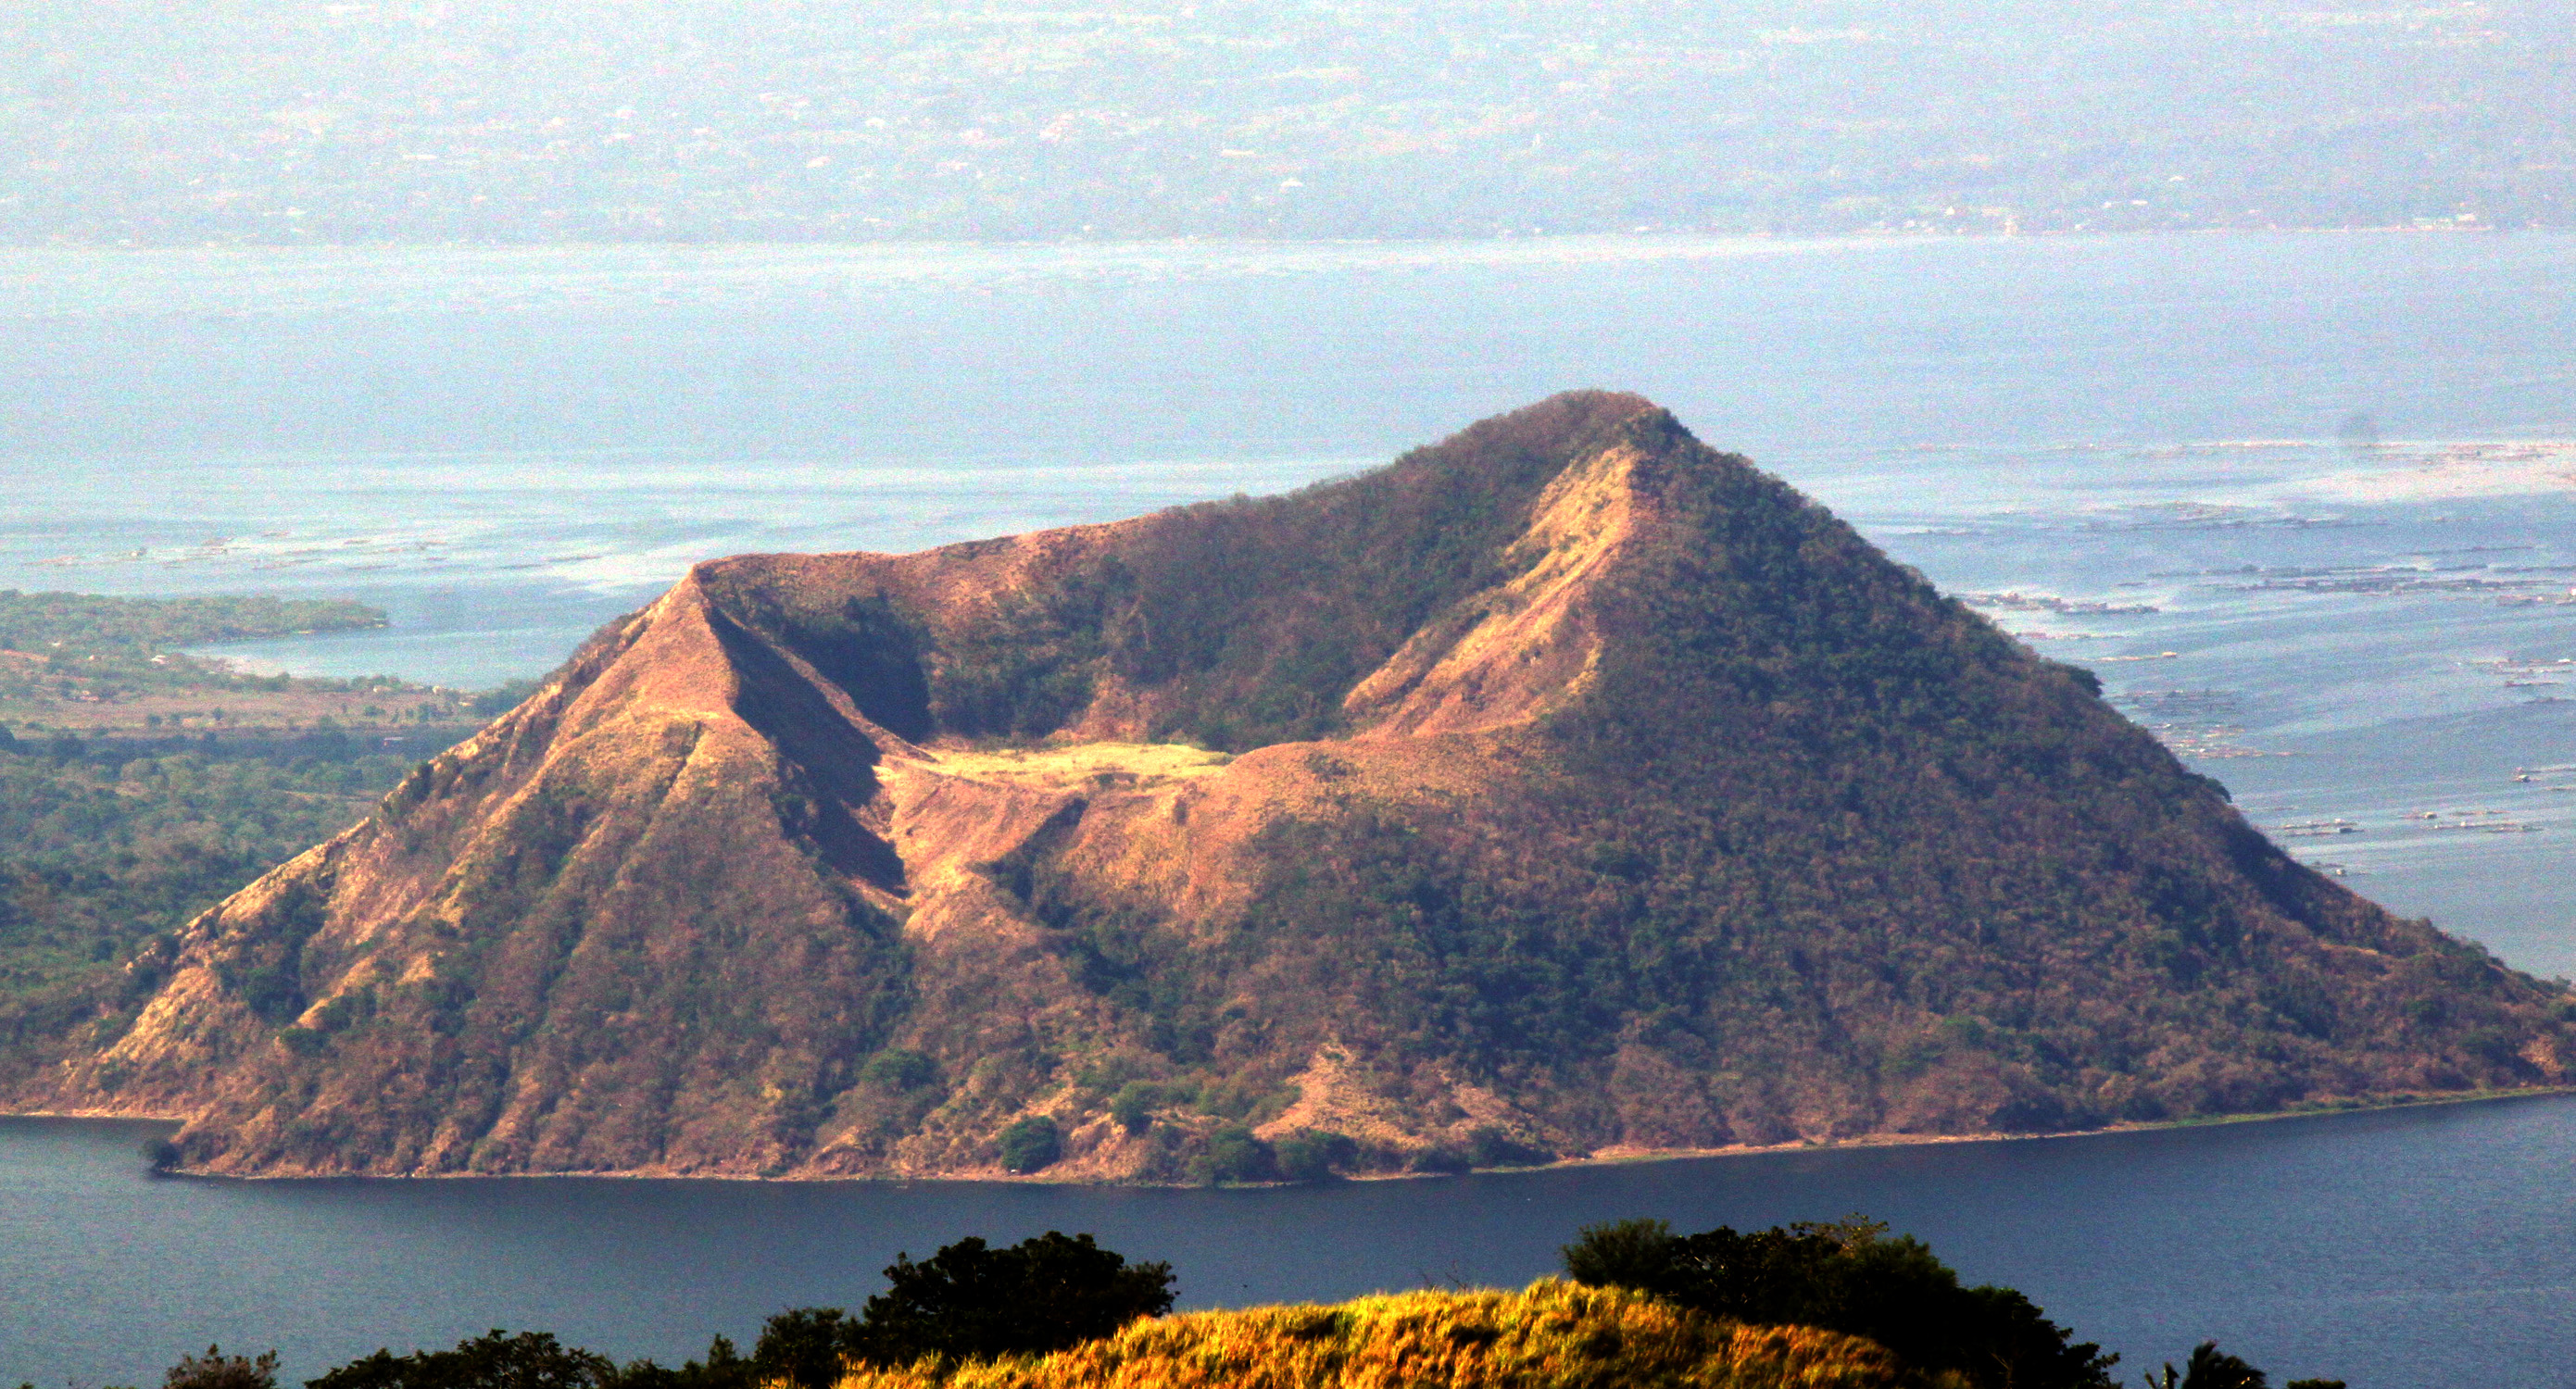 A top shot of one of Taal Volcano's several craters called the Binintiang Laki. Villagers who had lived for generations on Taal Volcano, one of the most dangerous among the country's 23 active peaks, have refused to abandon the area, despite warnings of a